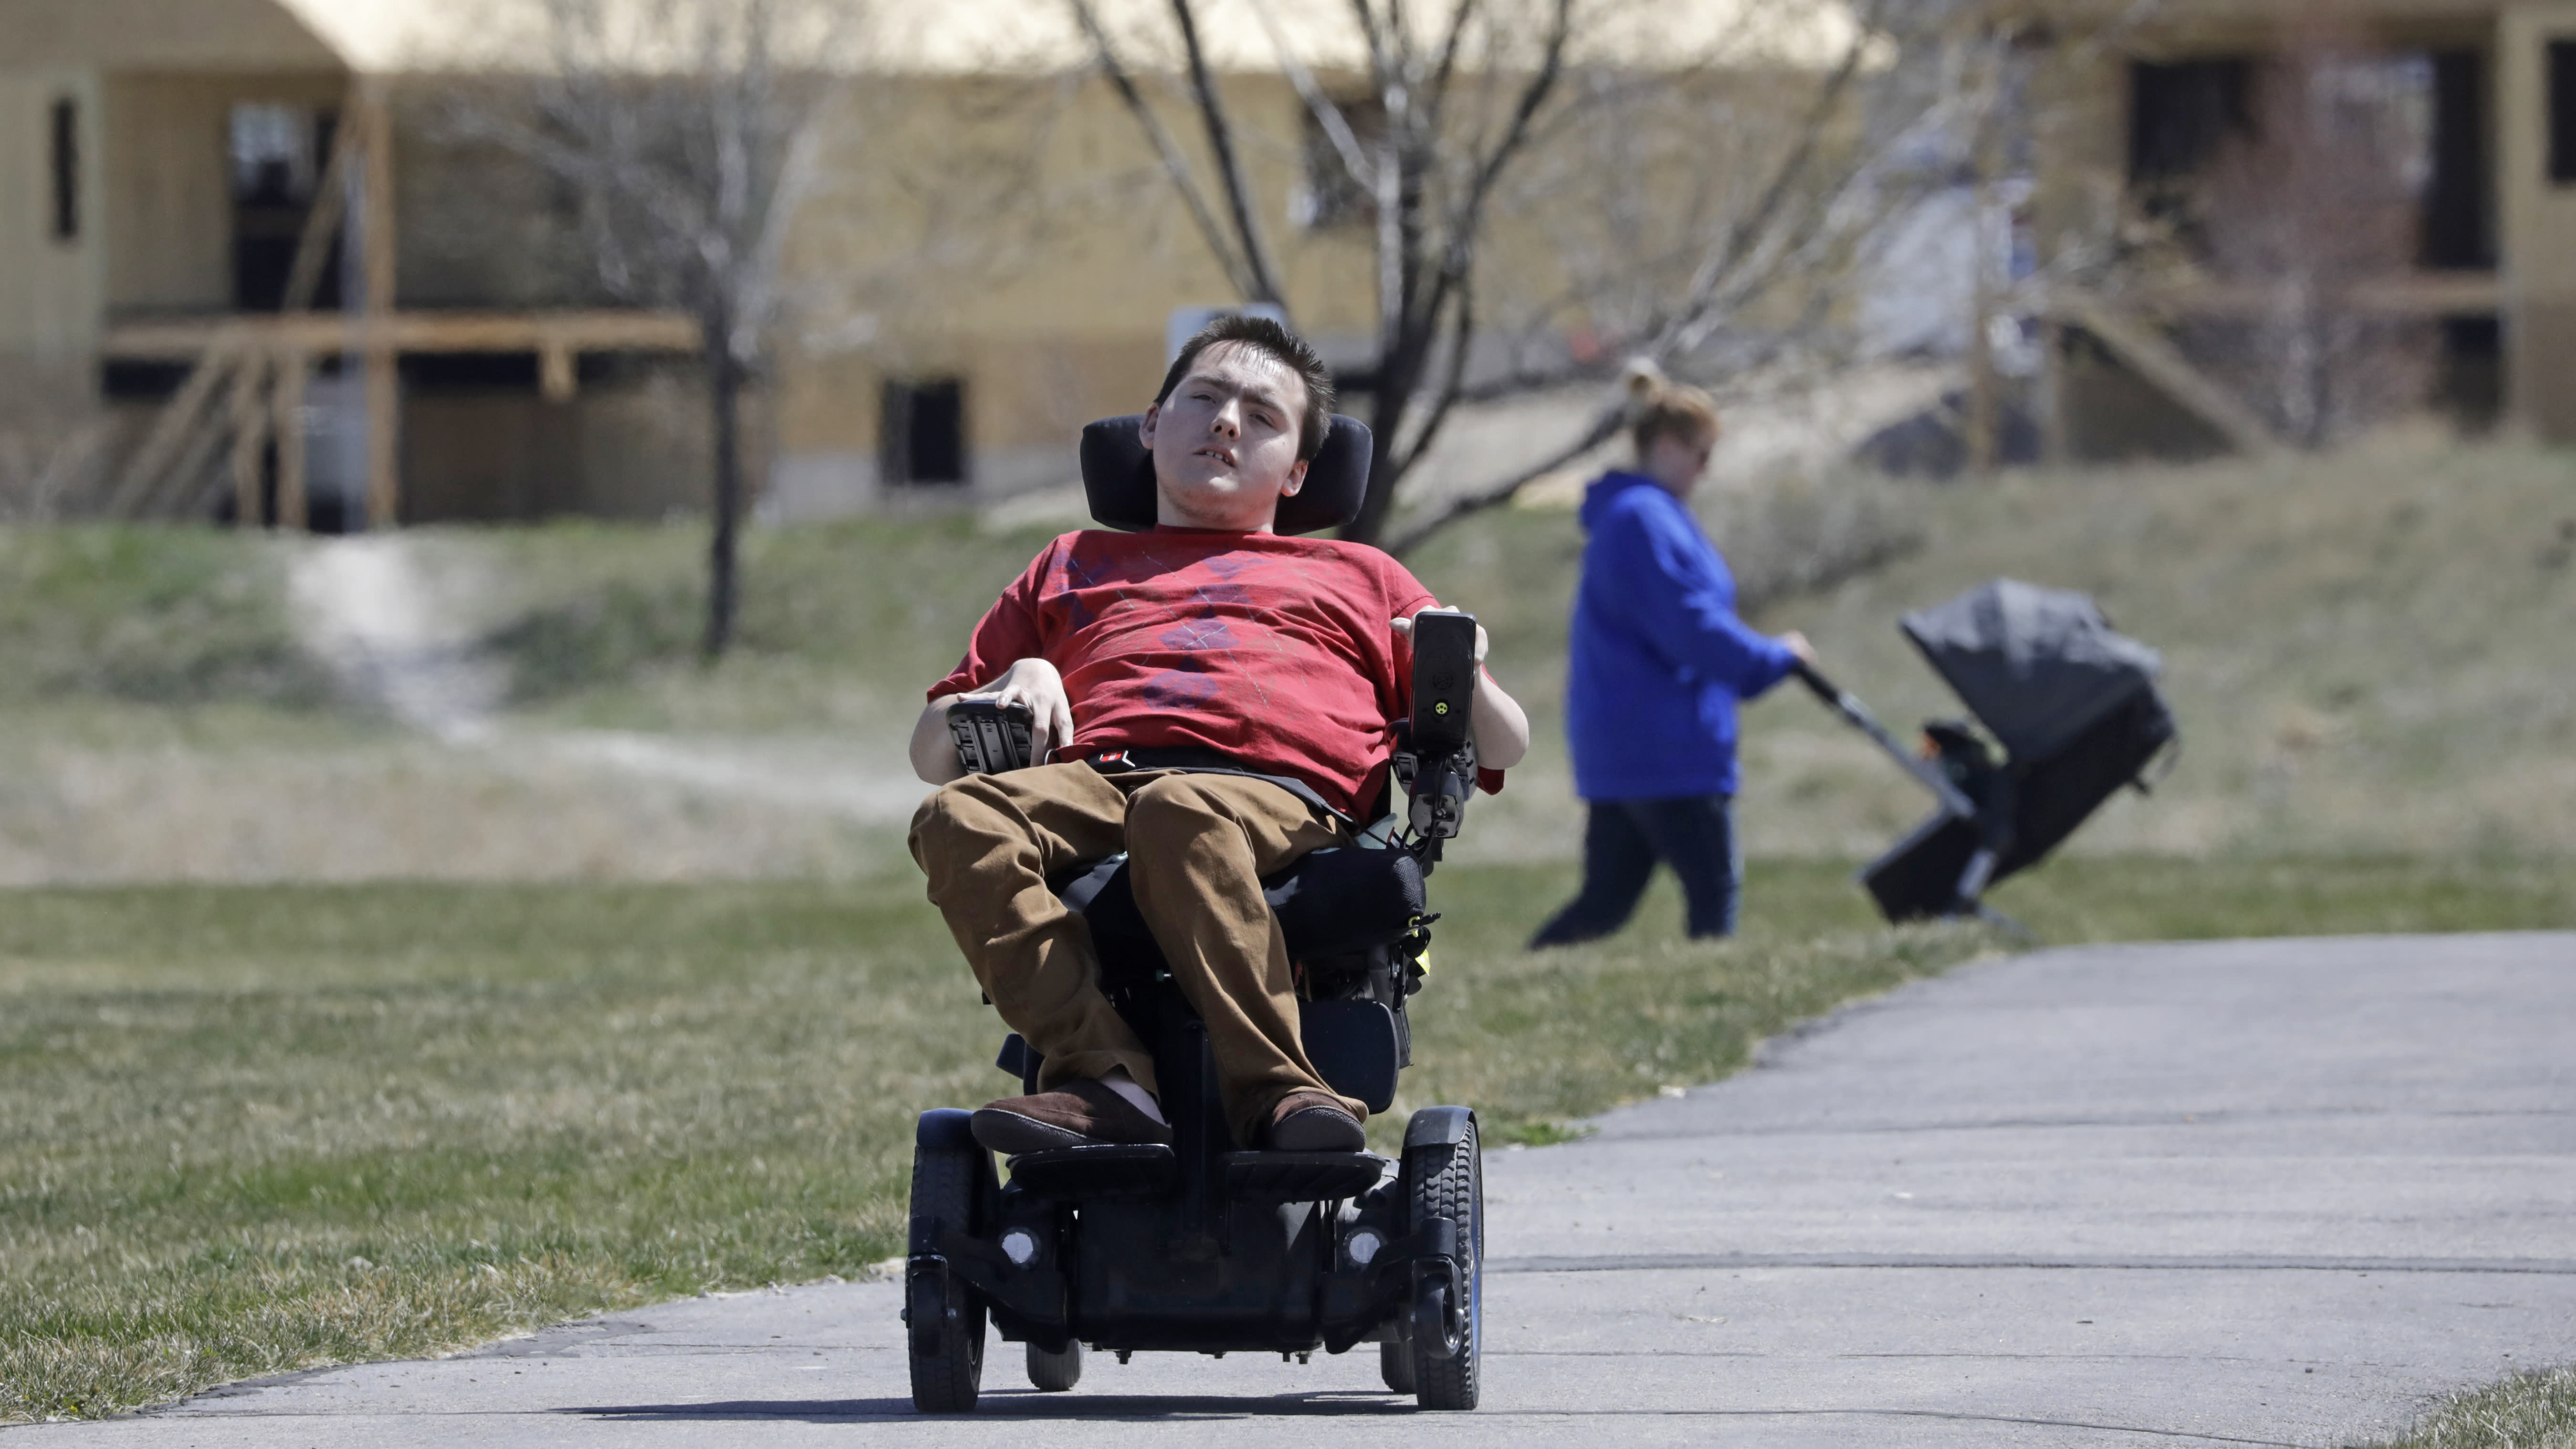 FILE - In this April 14, 2020, file photo, Jacob Hansen rides near his house on in Eagle Mountain, Utah. Utah overhauled crisis guidelines Thursday, Aug. 20, 2020, that could have put people with disabilities at the back of the line if hospitals become overwhelmed during the coronavirus pandemic, adopting a new plan that federal officials said should serve as a national model for removing bias from life-or-death decisions. In Utah, the complaint was filed on behalf of Hansen, who has cystic fibrosis that affects his lungs and uses a wheelchair due to cerebral palsy. (AP Photo/Rick Bowmer, File)